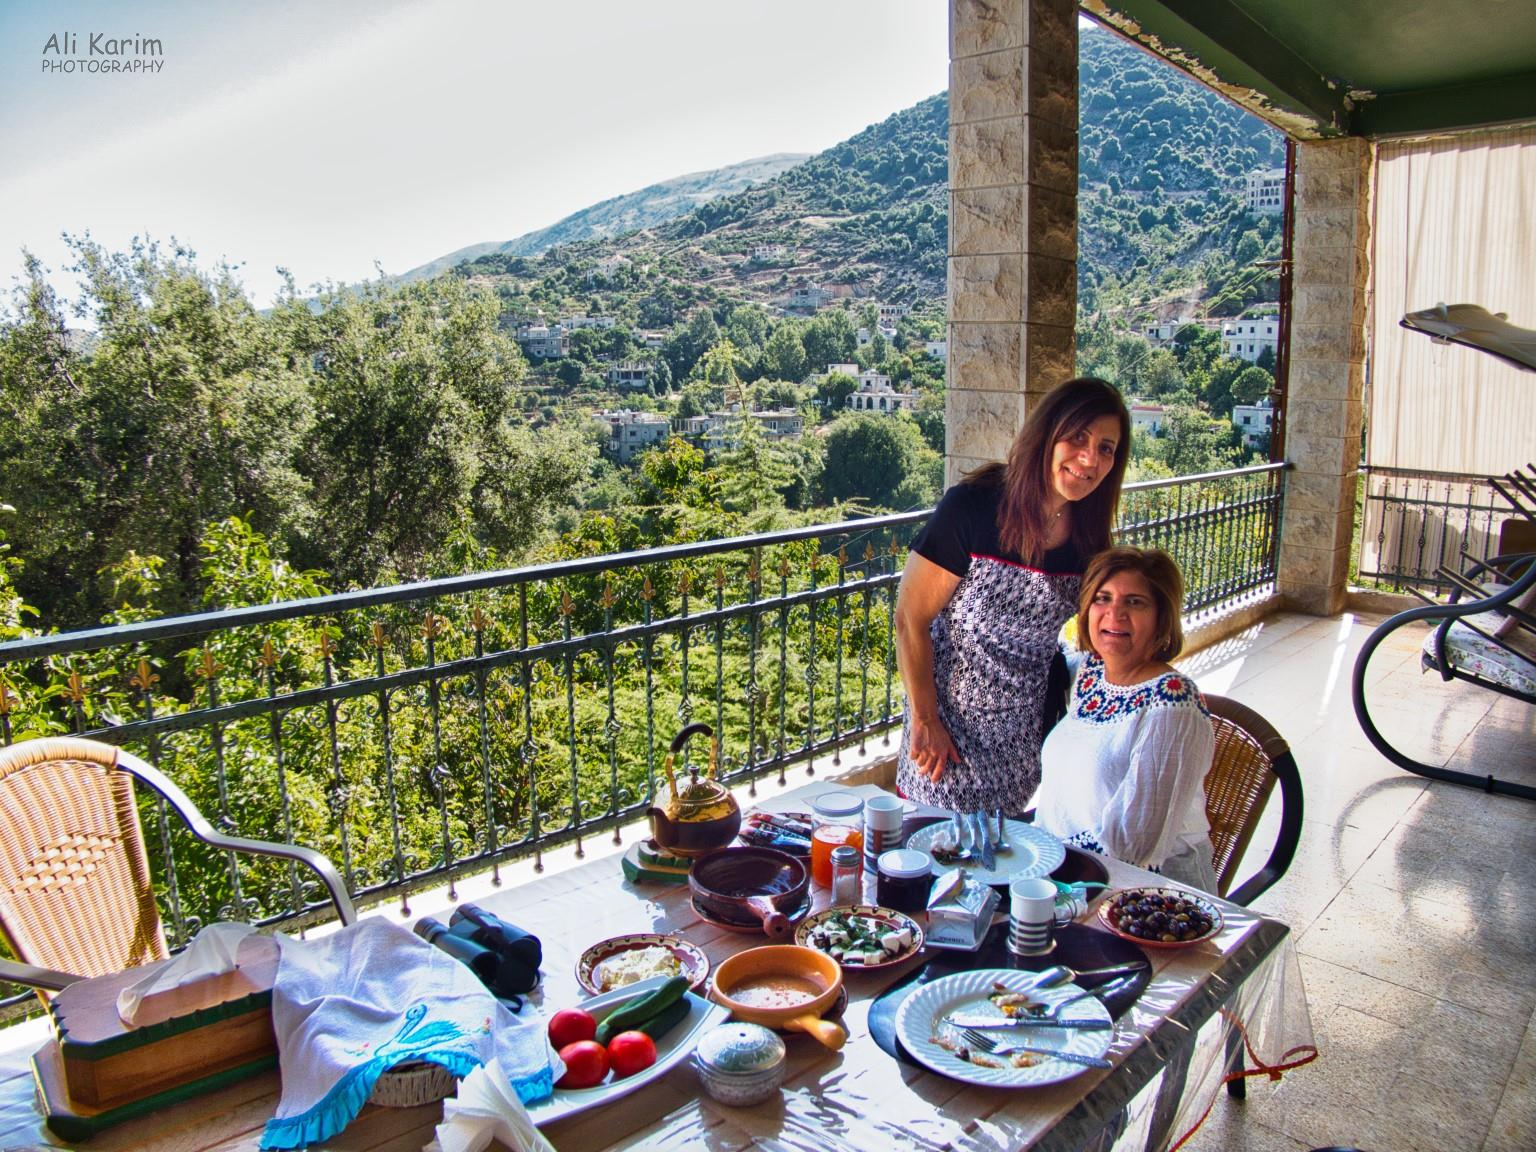 Bekaa Valley Winery, Chouf Mountains & the Druze Fadia and breakfast on the terrace overlooking the Chouf Mountains